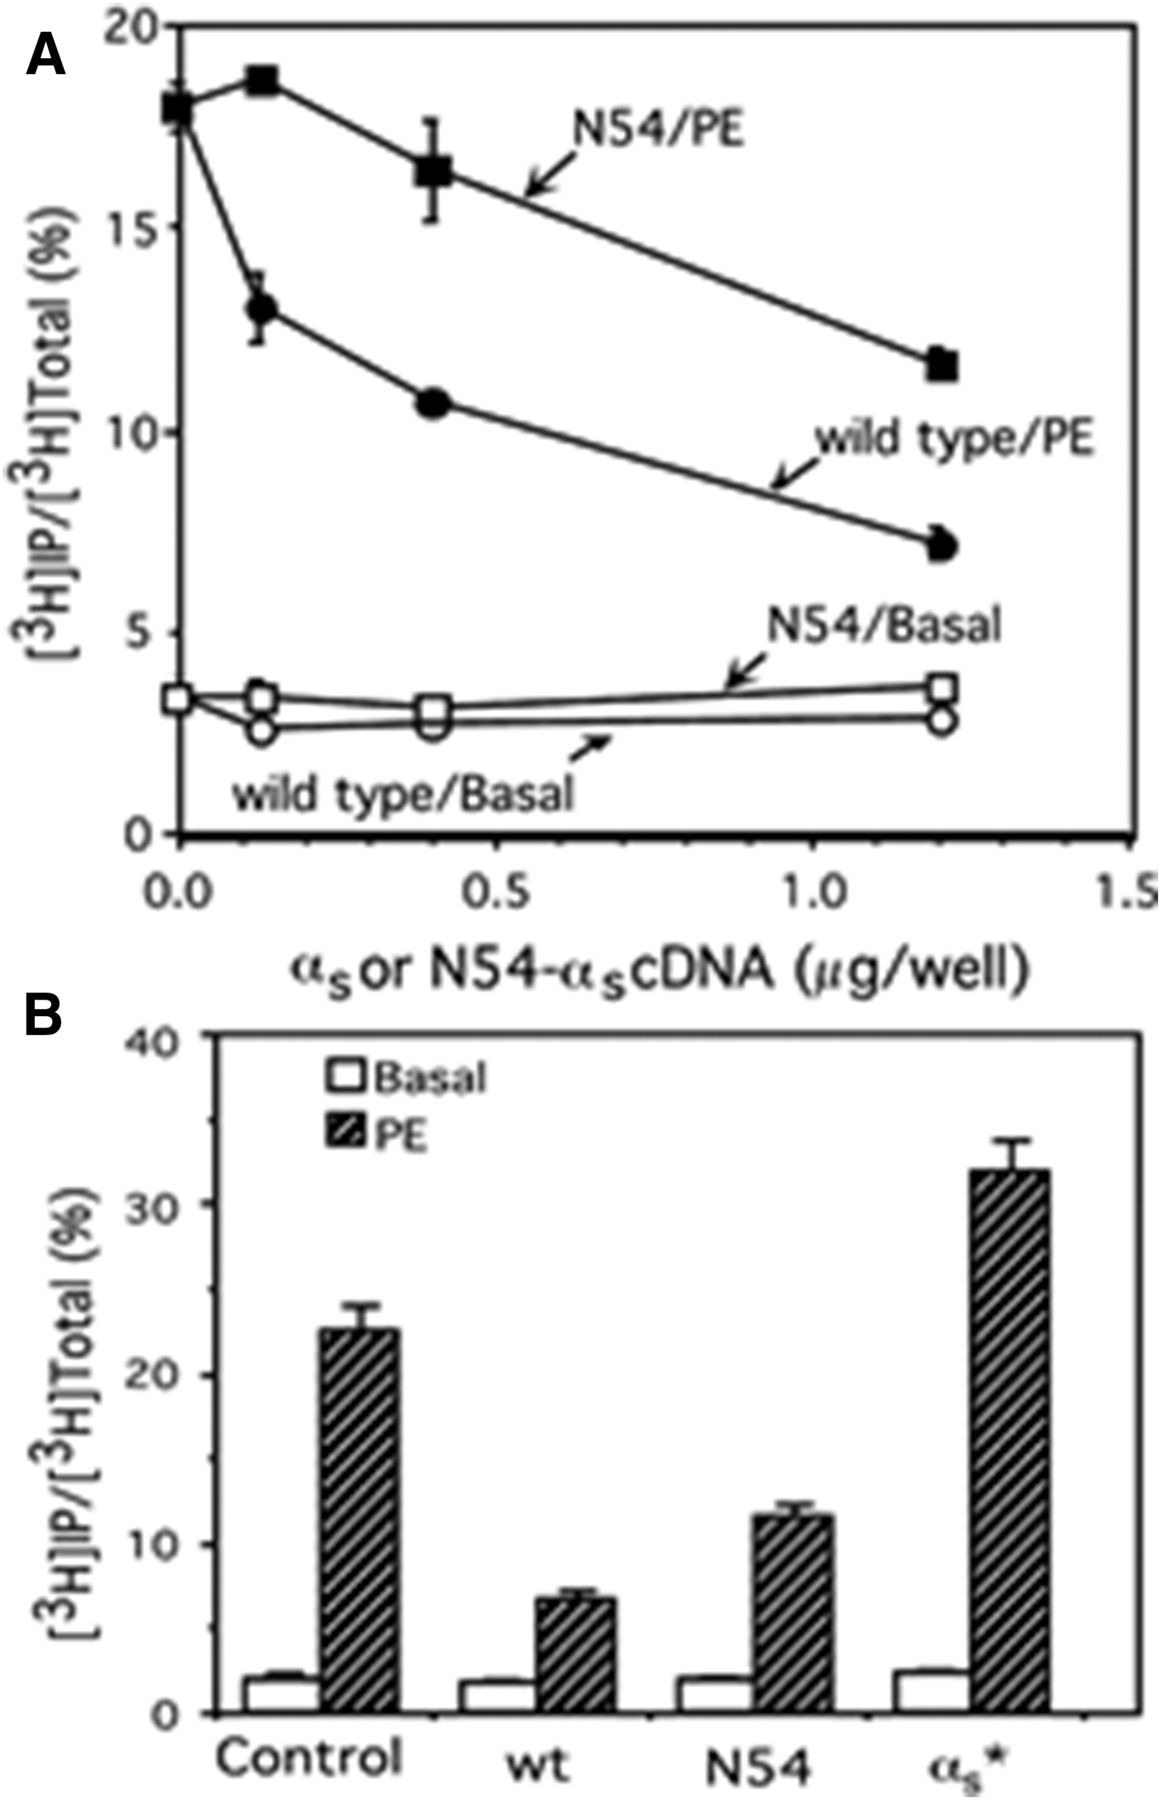 The N54-αs Mutant Has Decreased Affinity for βγ and Suggests